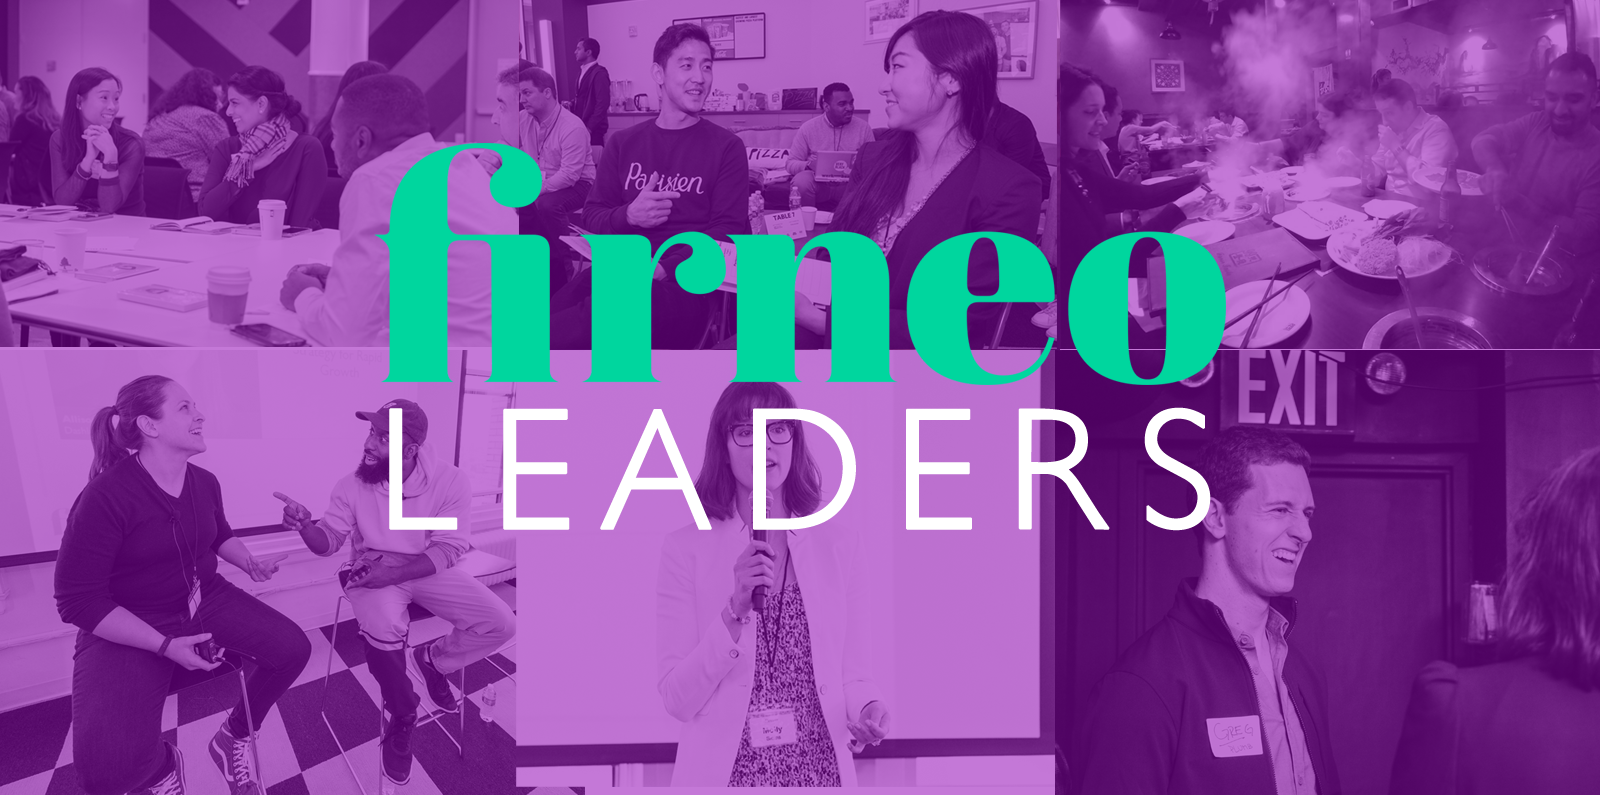 Firneo Leaders collage.png